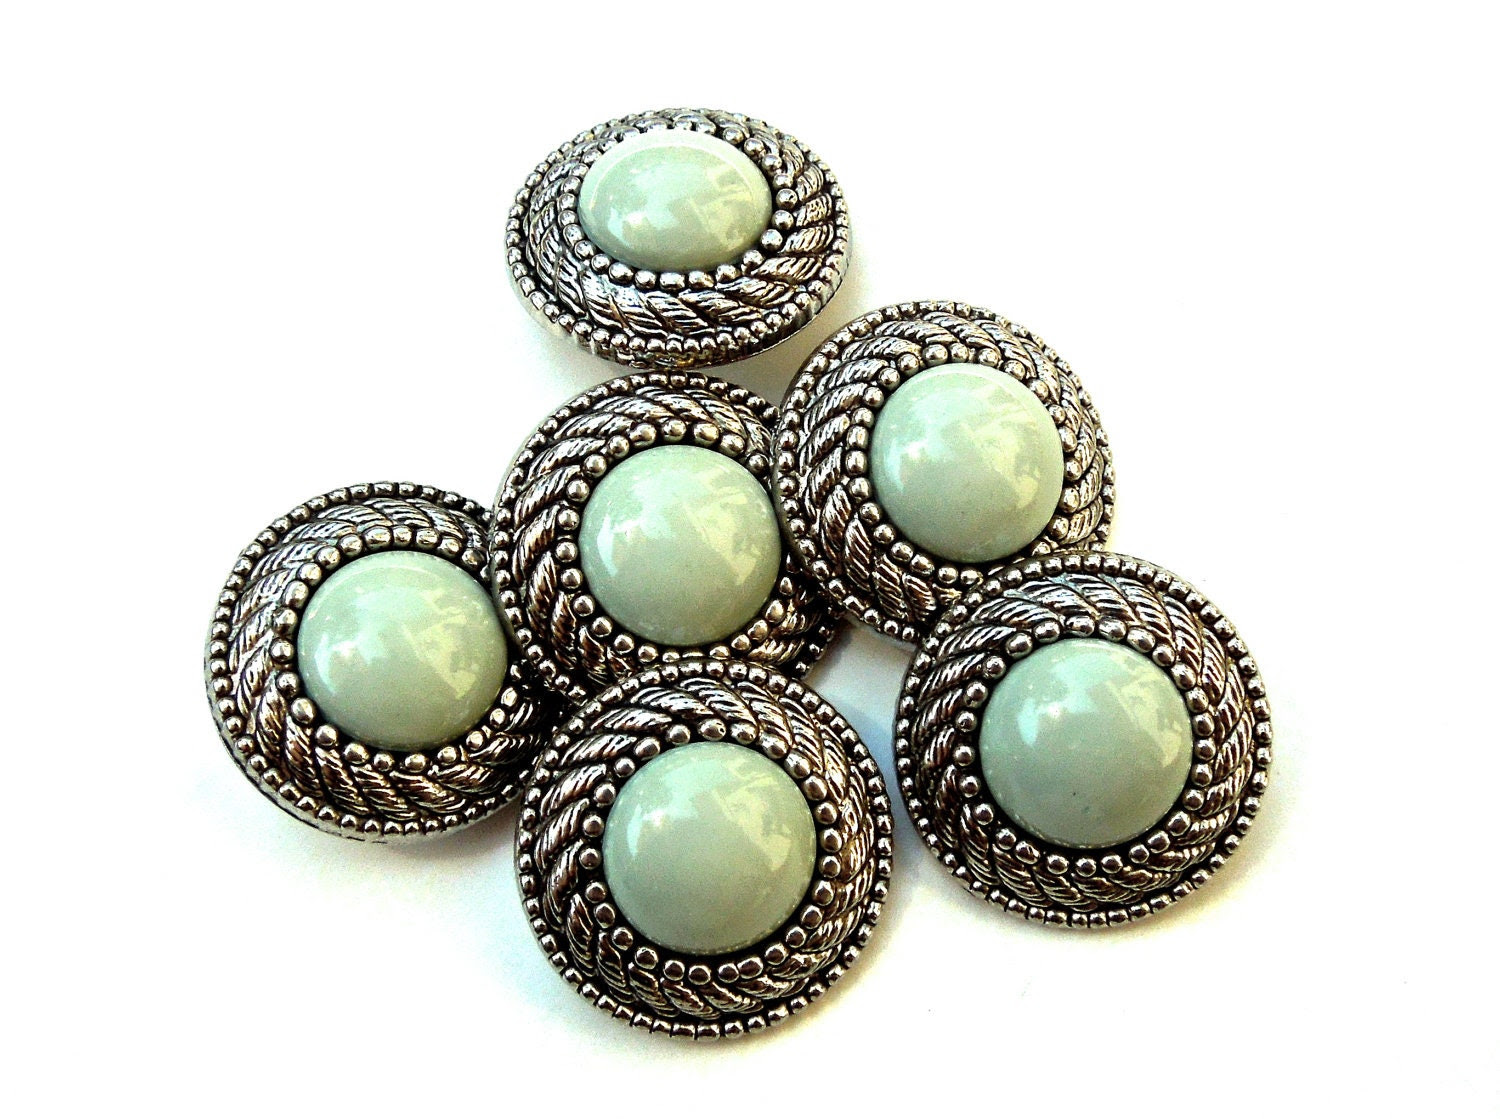 VINTAGE: 6 Retro Mint and Silver Snap Together Plastic Buttons - 80's - DansandBrandi